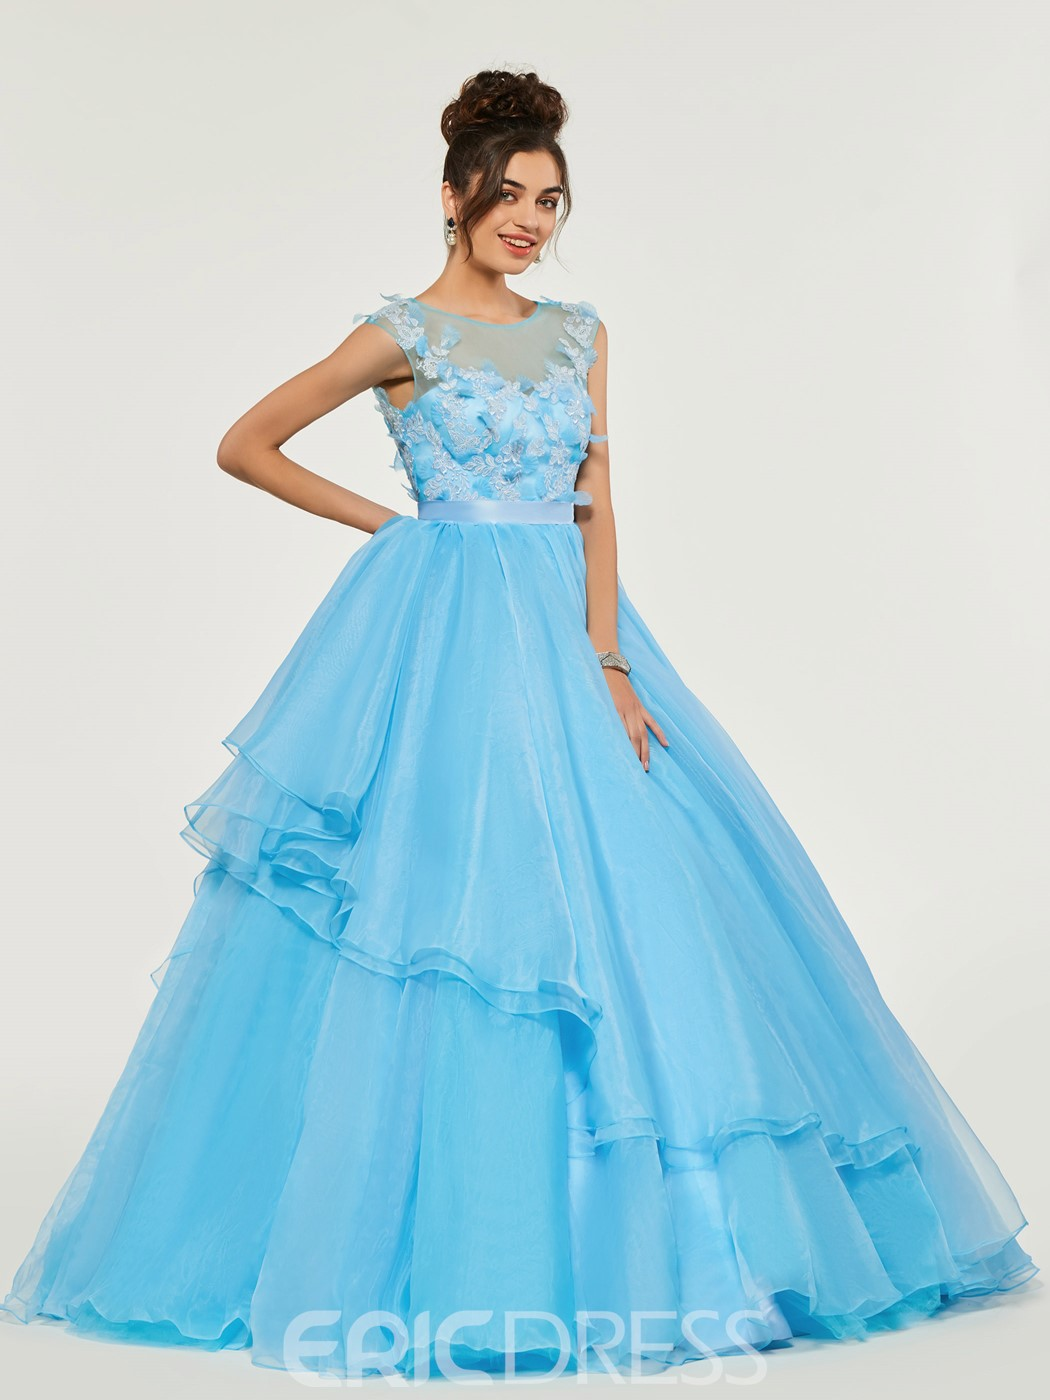 Ericdress Cap Sleeve Applique Ball Quinceanera Dress With Lace-Up Back